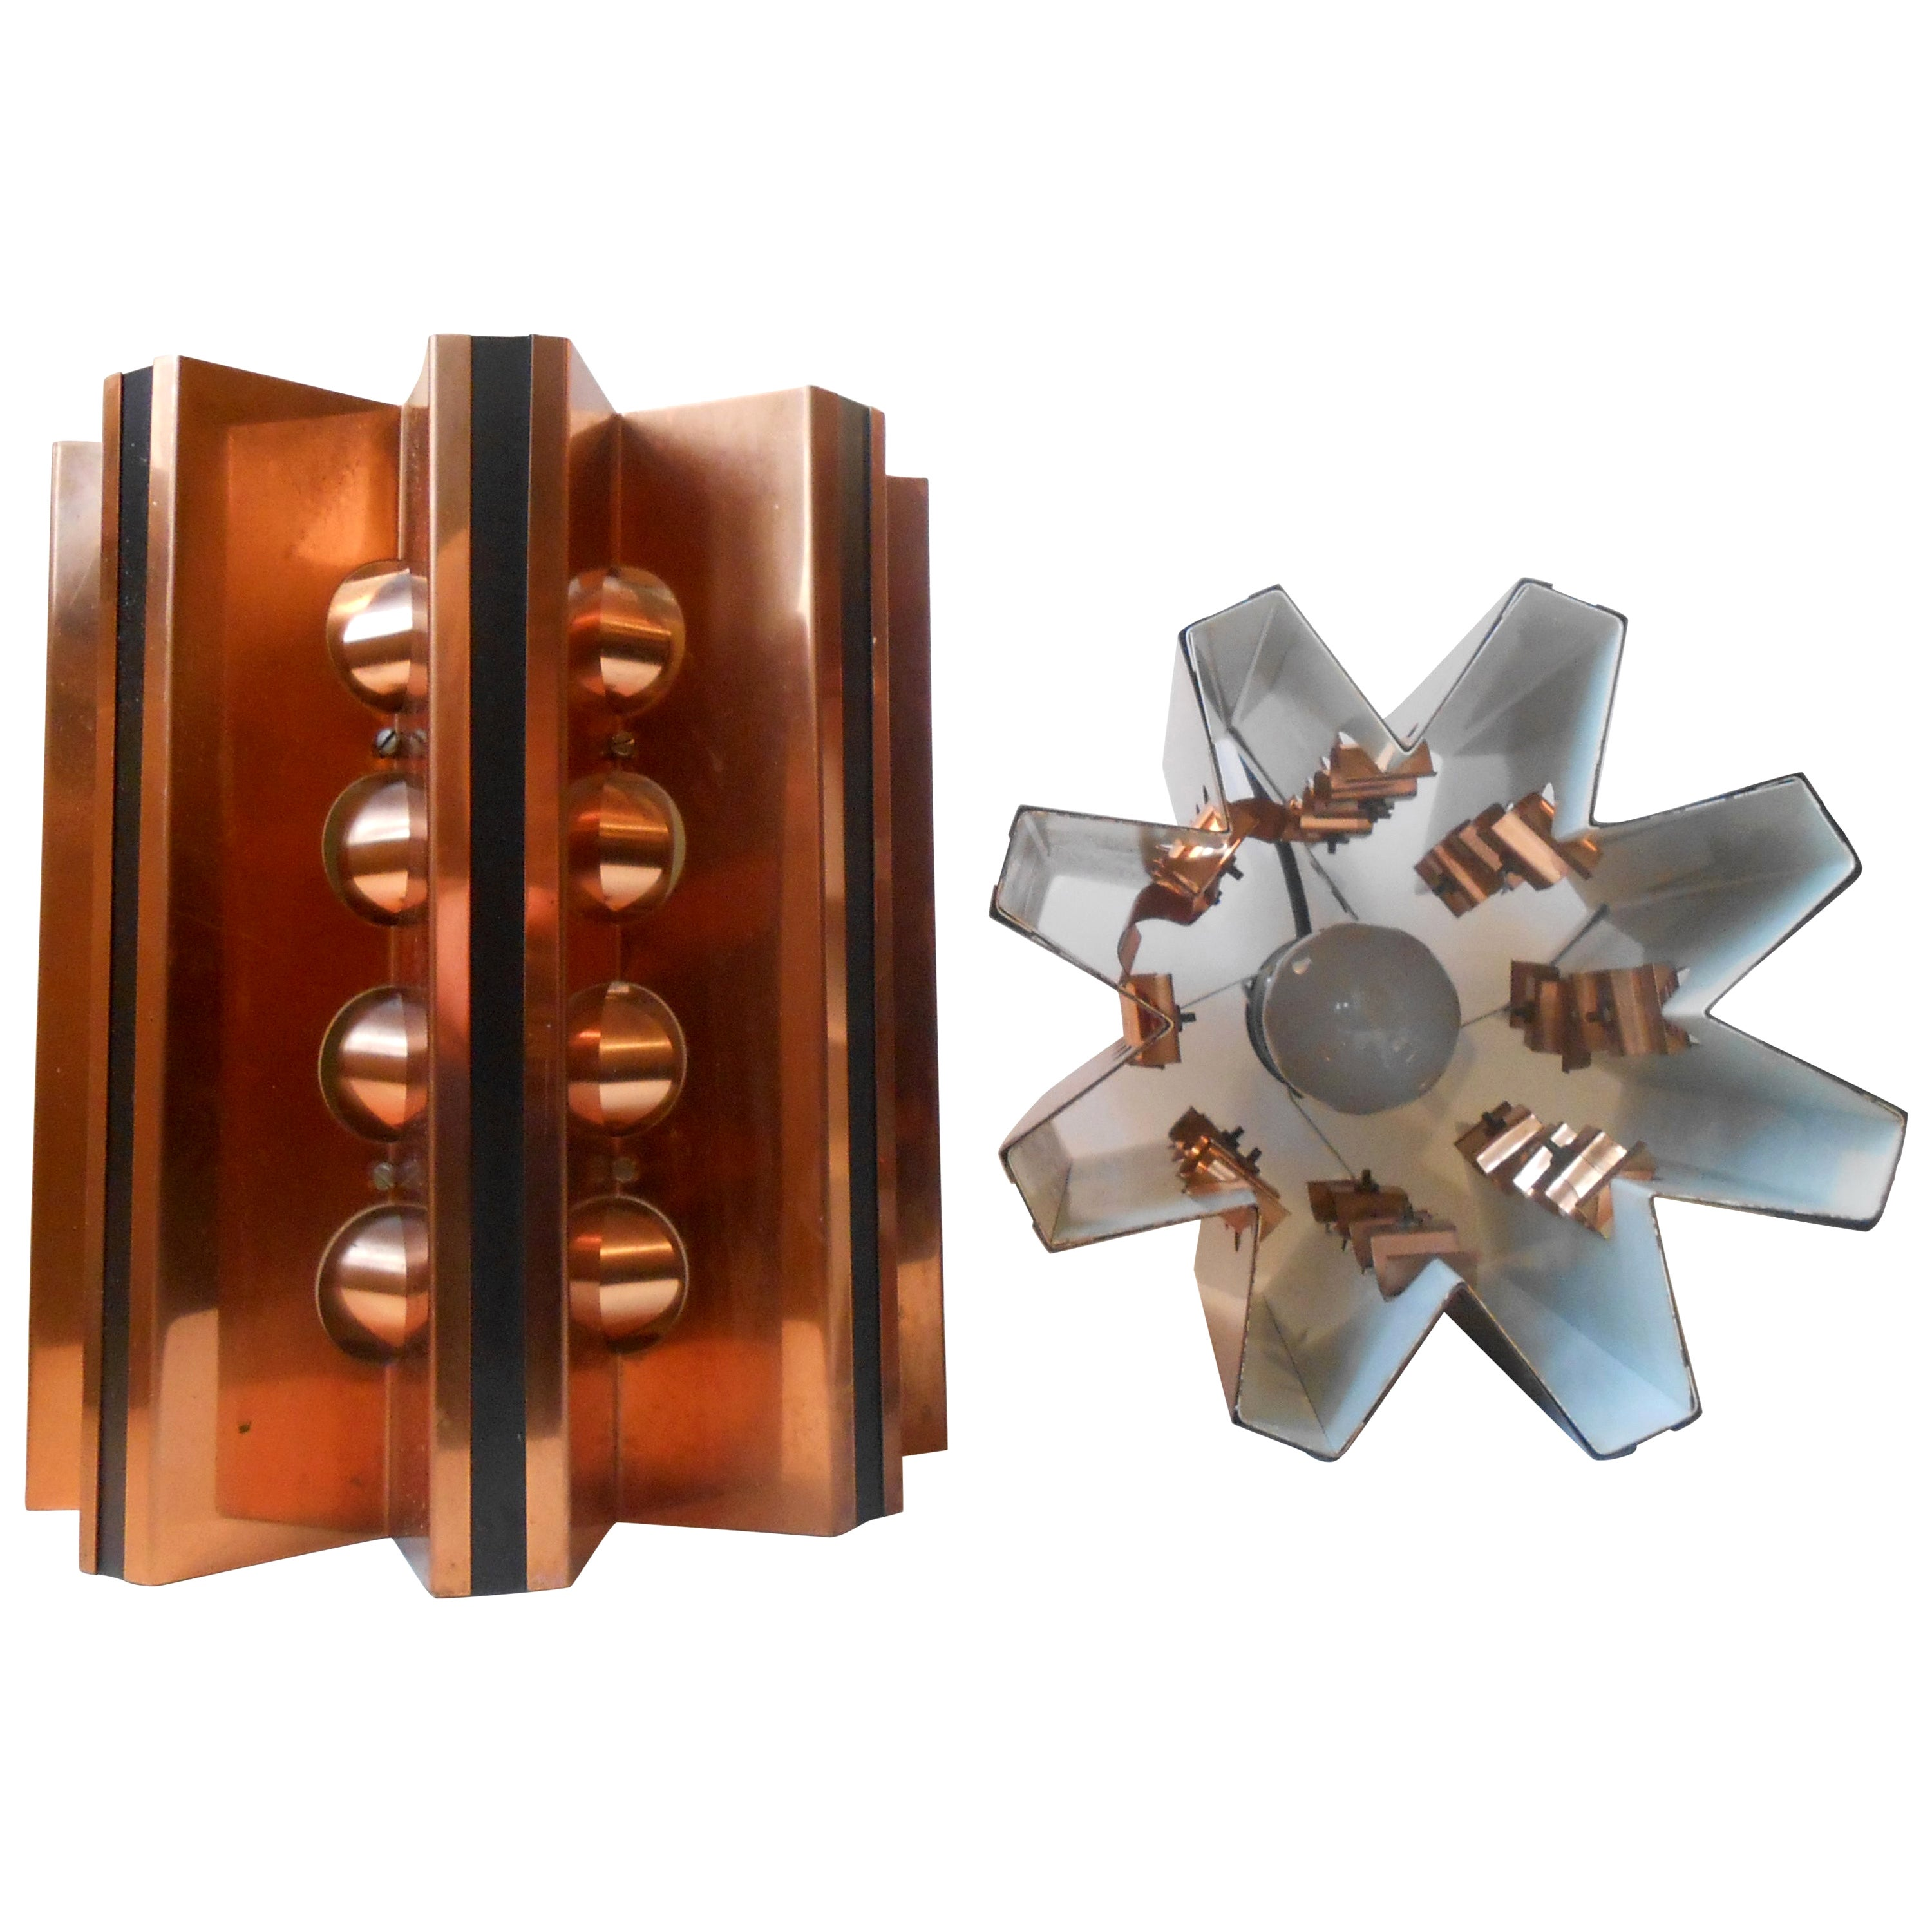 Pair of Danish Modern Copper Ceiling Lights by Verner Schou for Coronell